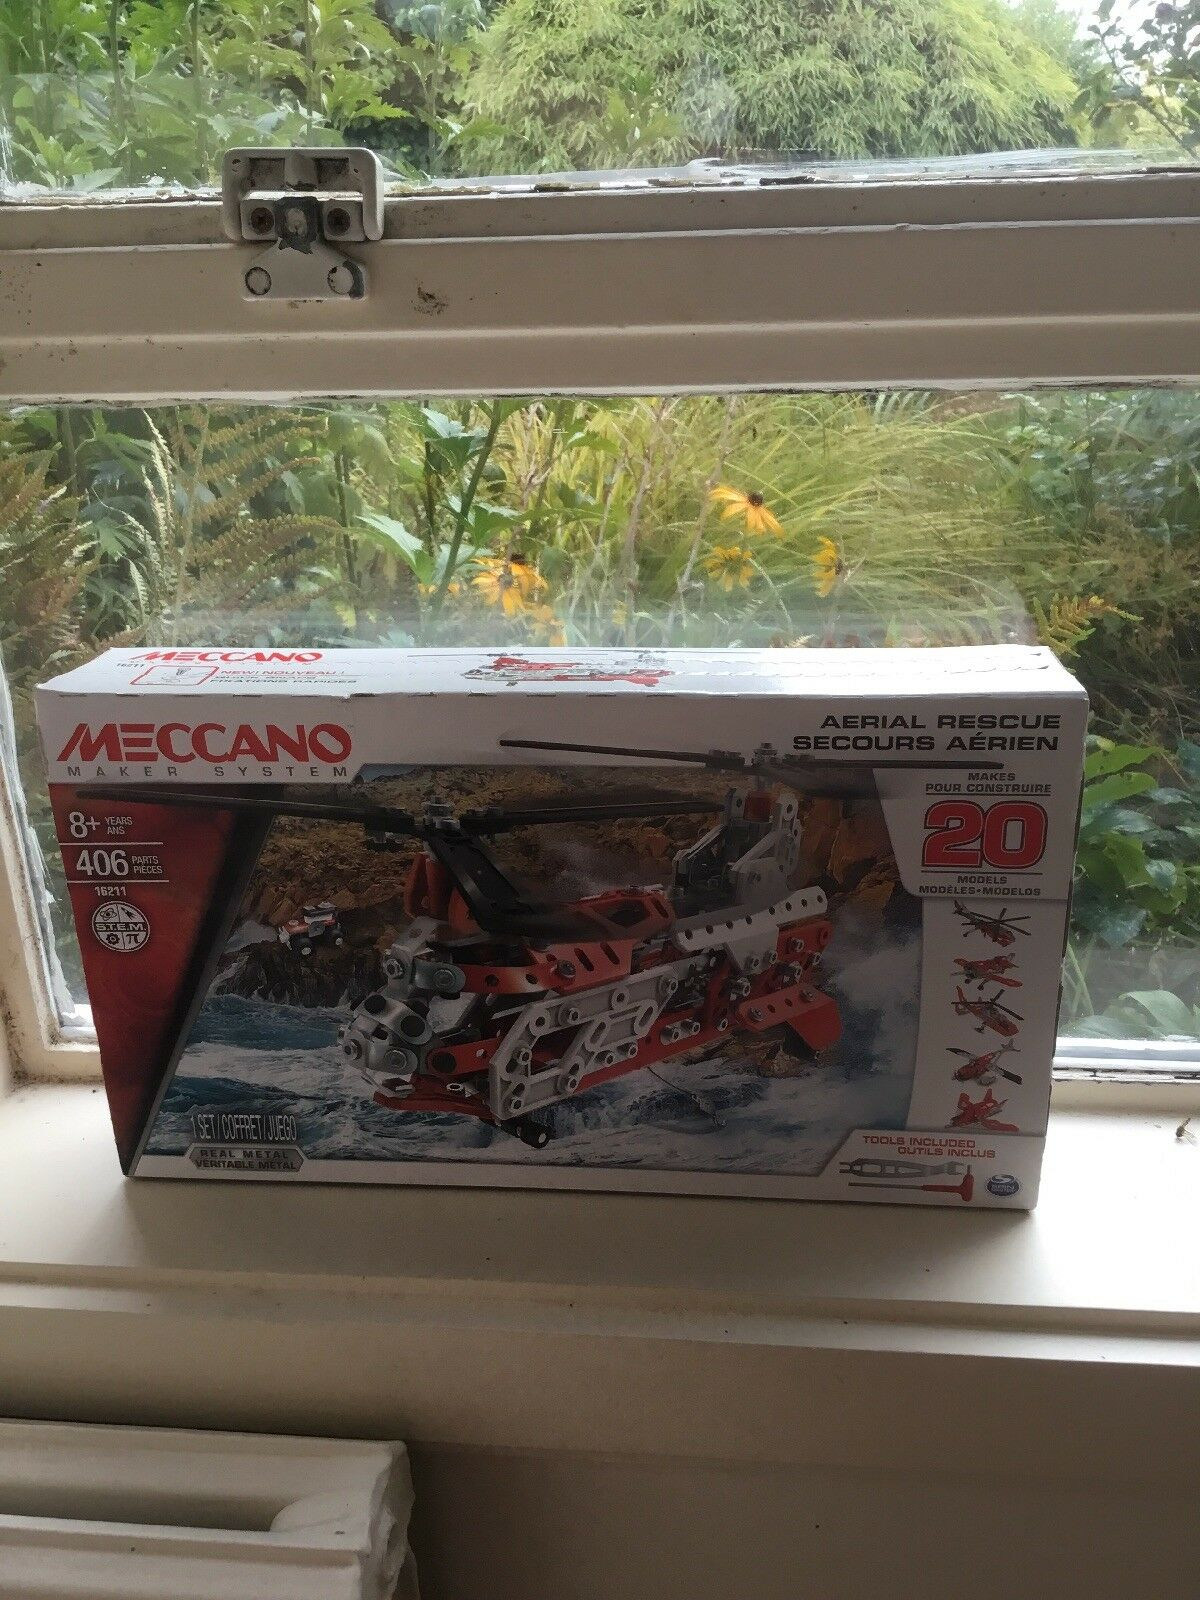 MECCANO MAKER SYSTEM 20 MODELS SET AERIAL RESCUE HELICOPTER 16211 BRAND NEW